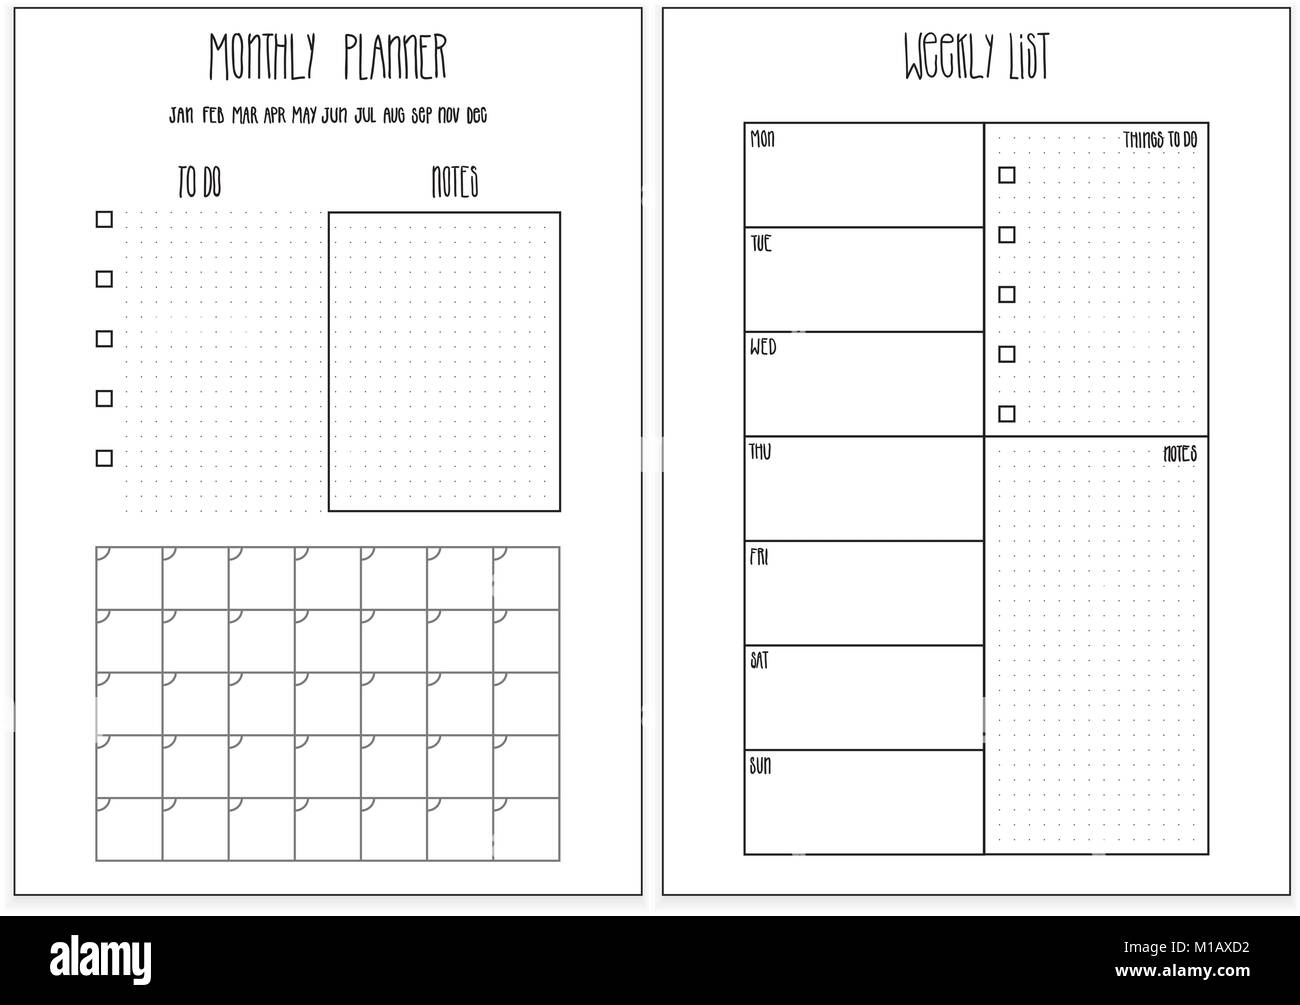 printable weekly planner stock photos printable weekly planner